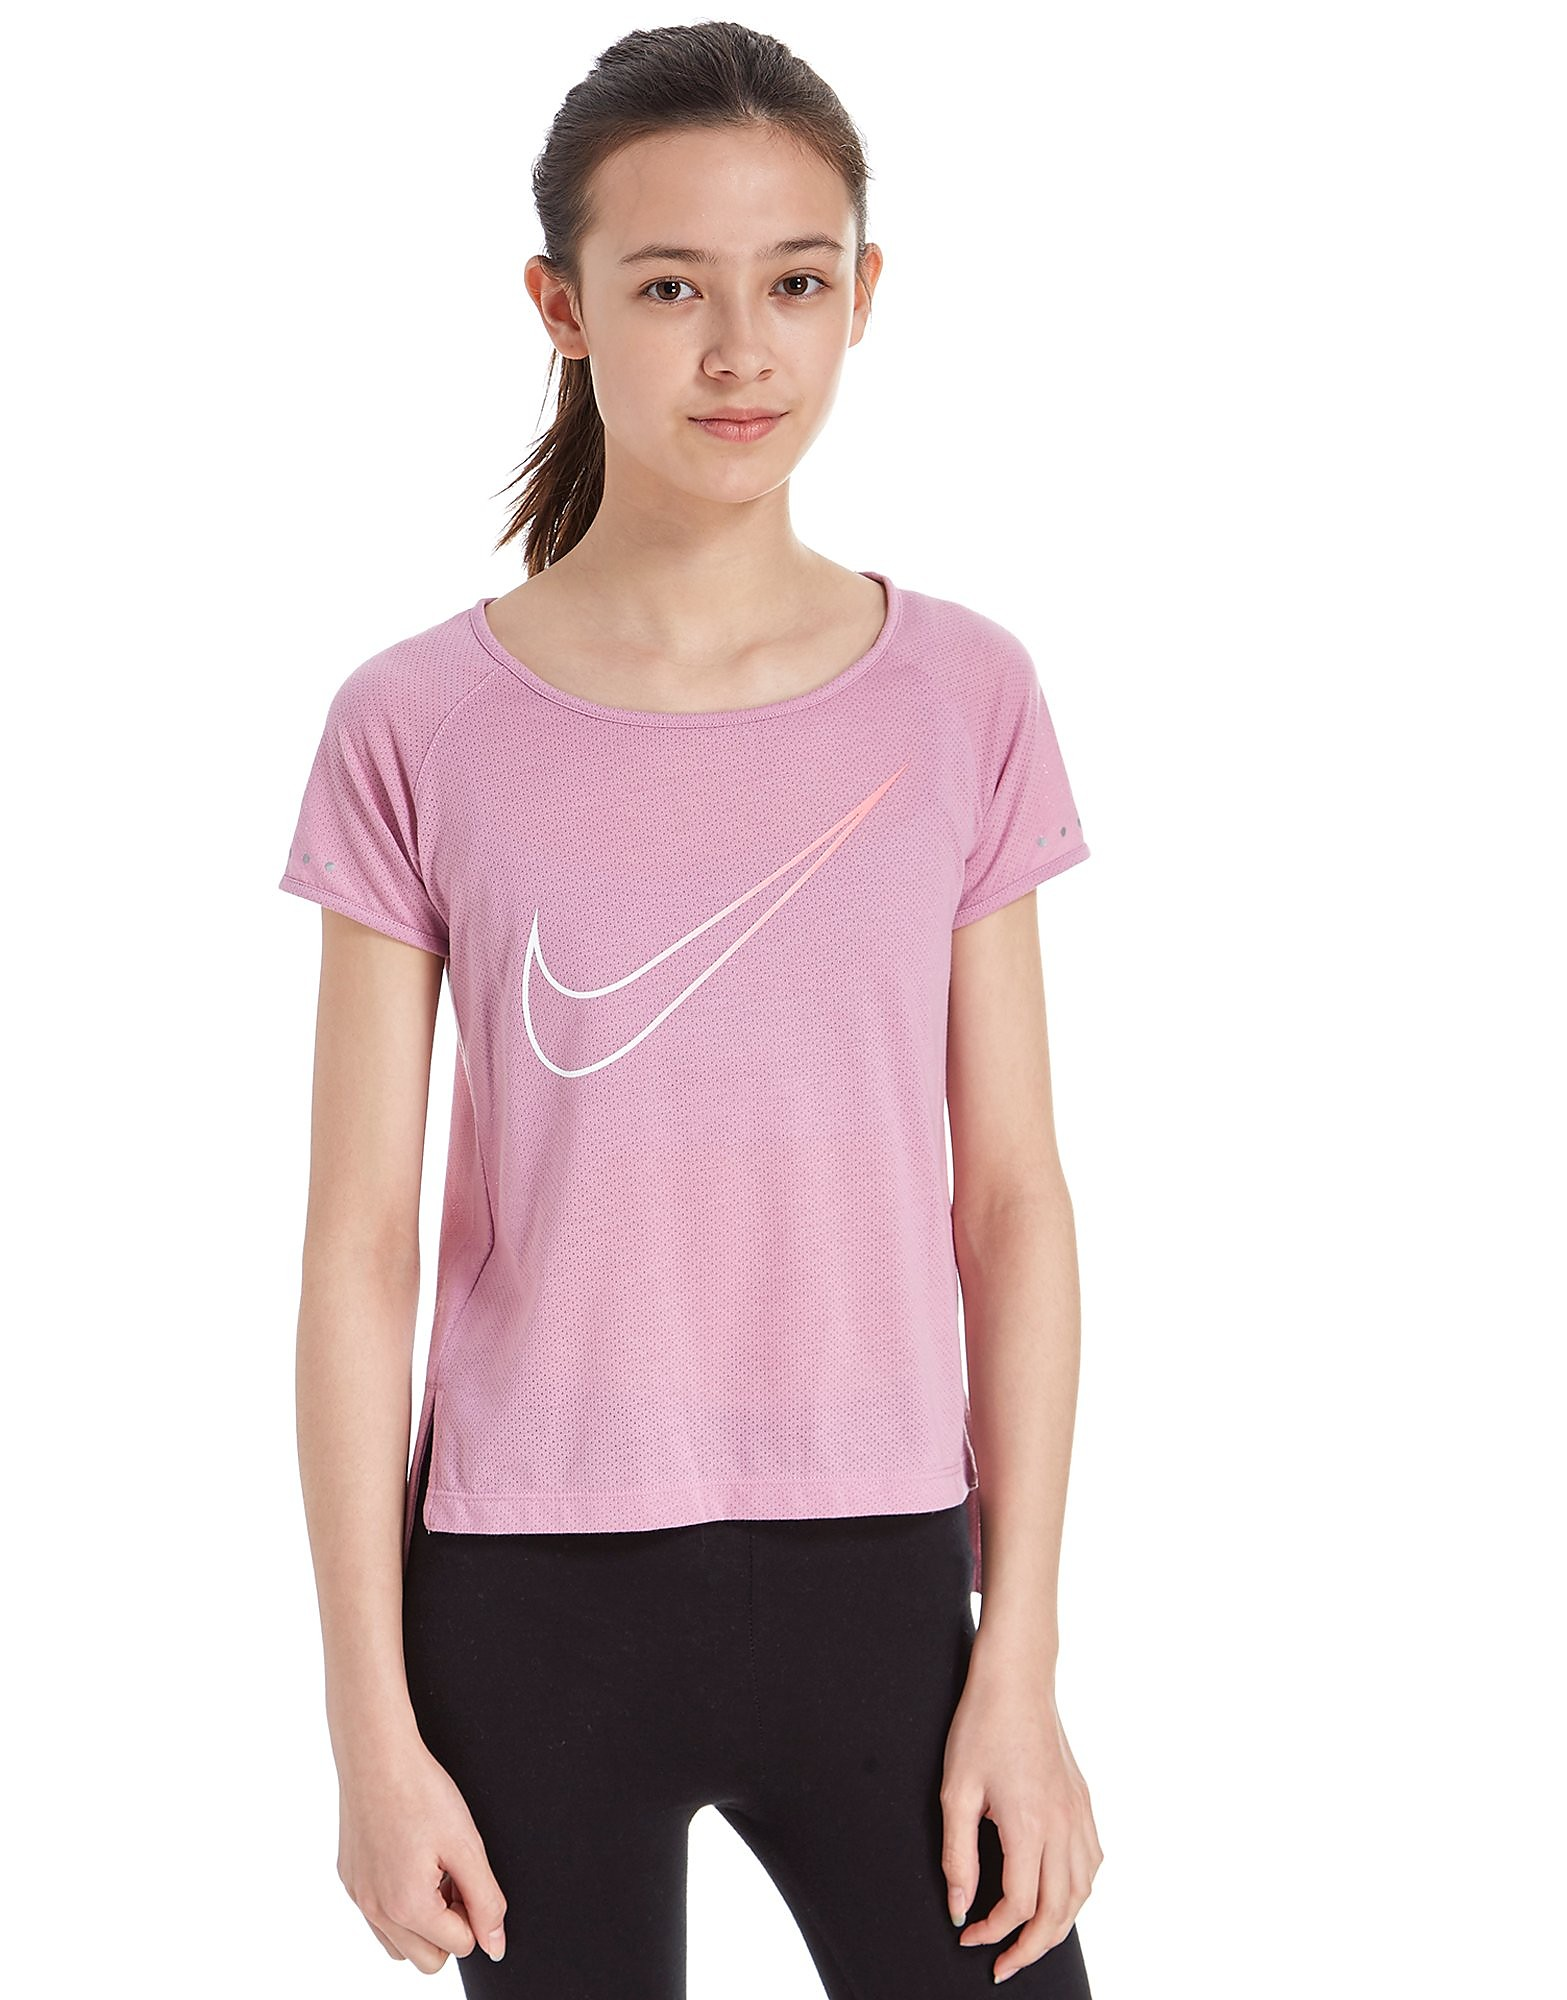 Nike Girls' City Breathe T-Shirt Junior